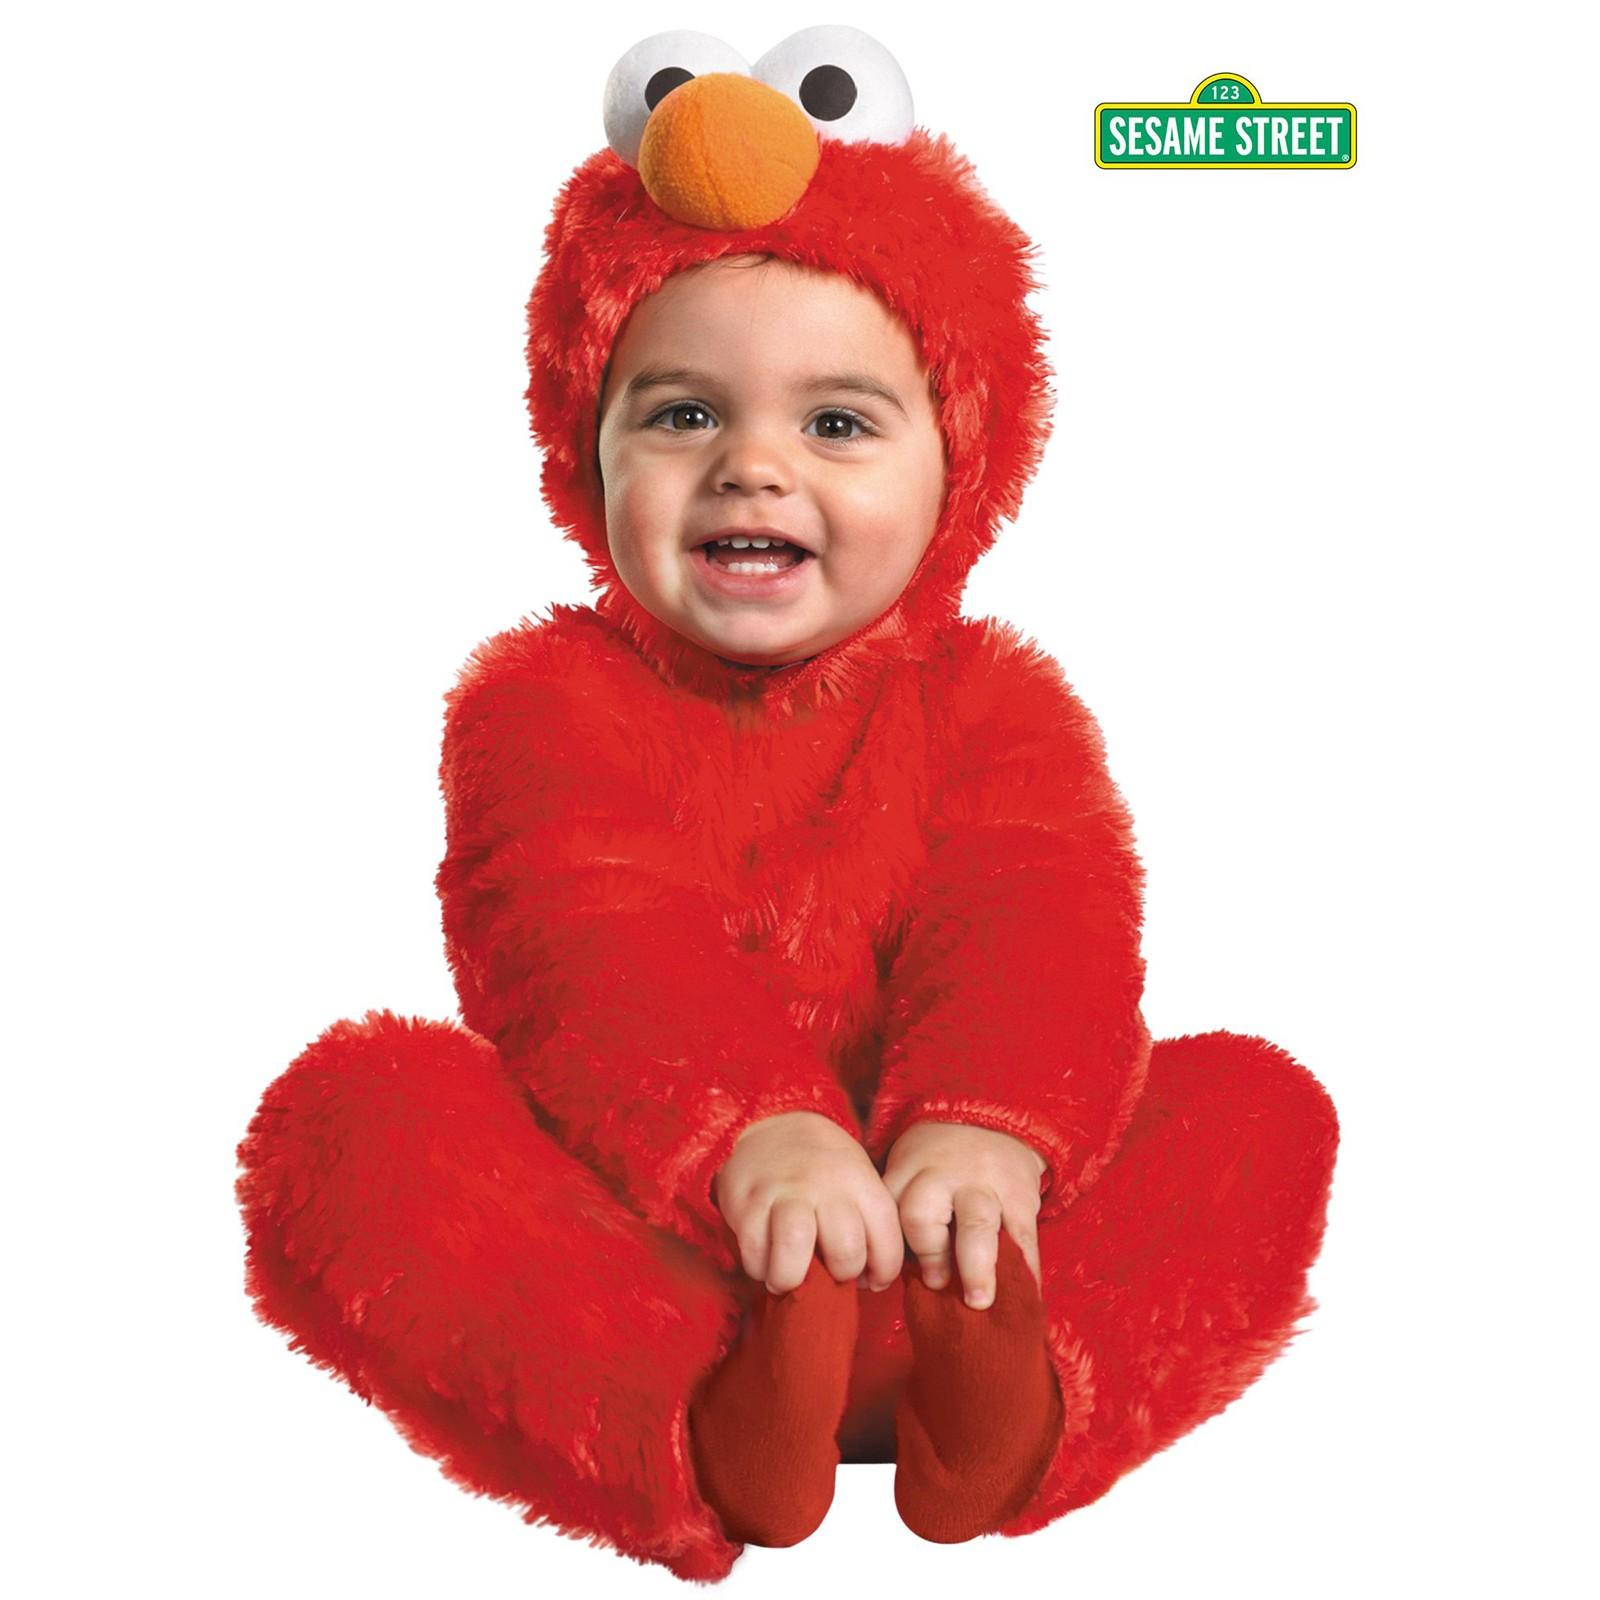 Sesame Street Elmo Comfy Fur Costume for Toddler by Disguise